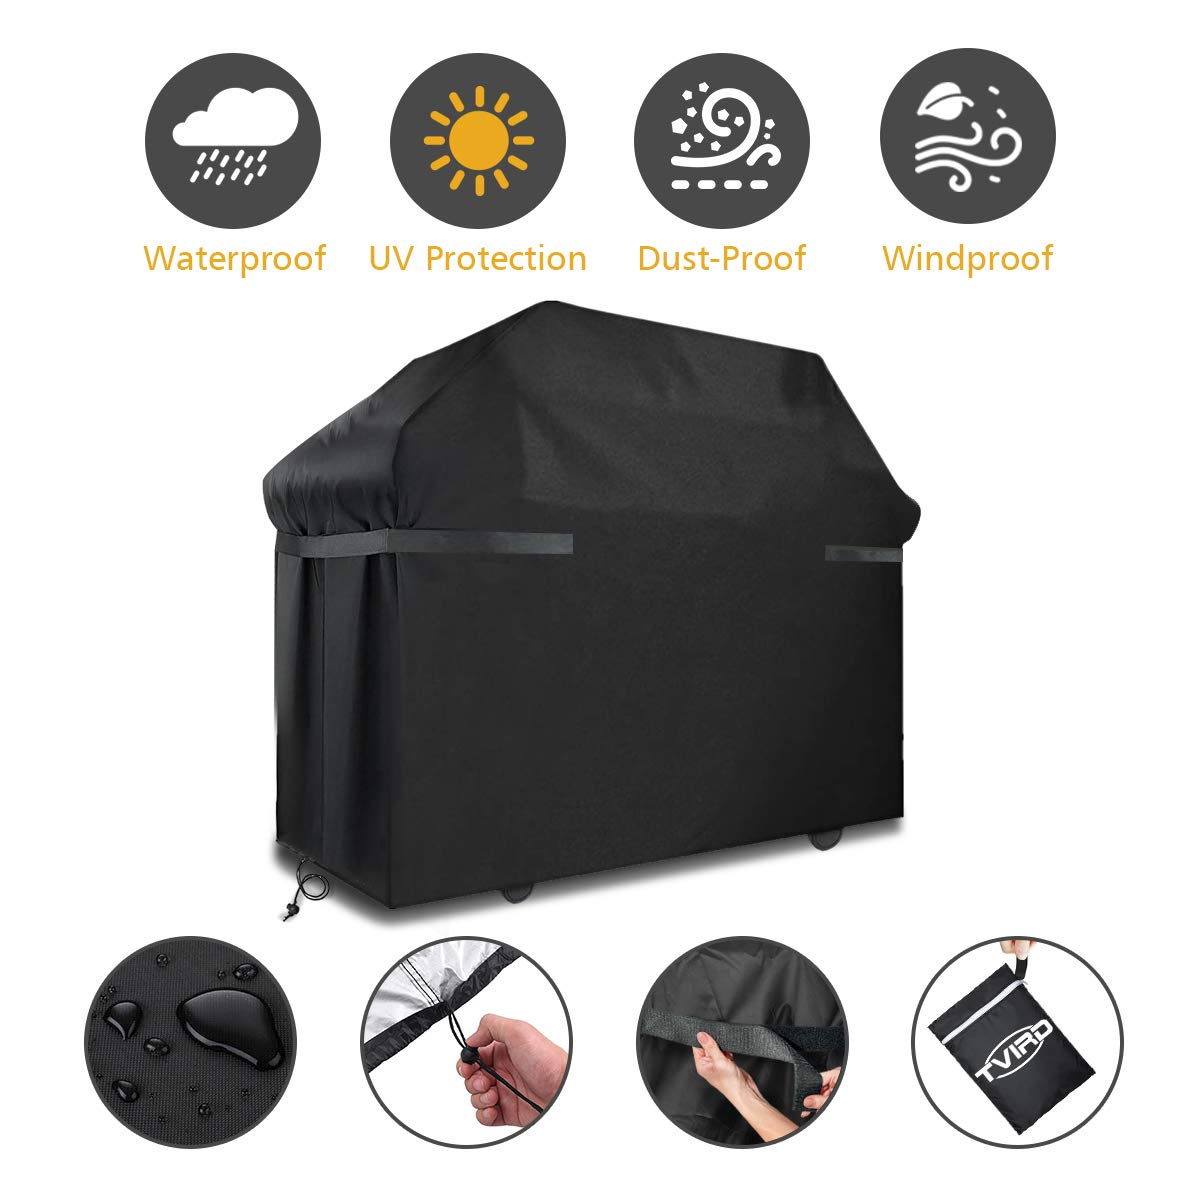 BBQ Grill Cover, Tvird Gas Grill Covers | 58-inch Heavy Duty Waterproof BBQ Cover | Fits Grills for Weber Char-Broil Nexgrill Brinkmann, Windproof, Rip-Proof, Weather & UV Resistant with Storage Bag by Tvird